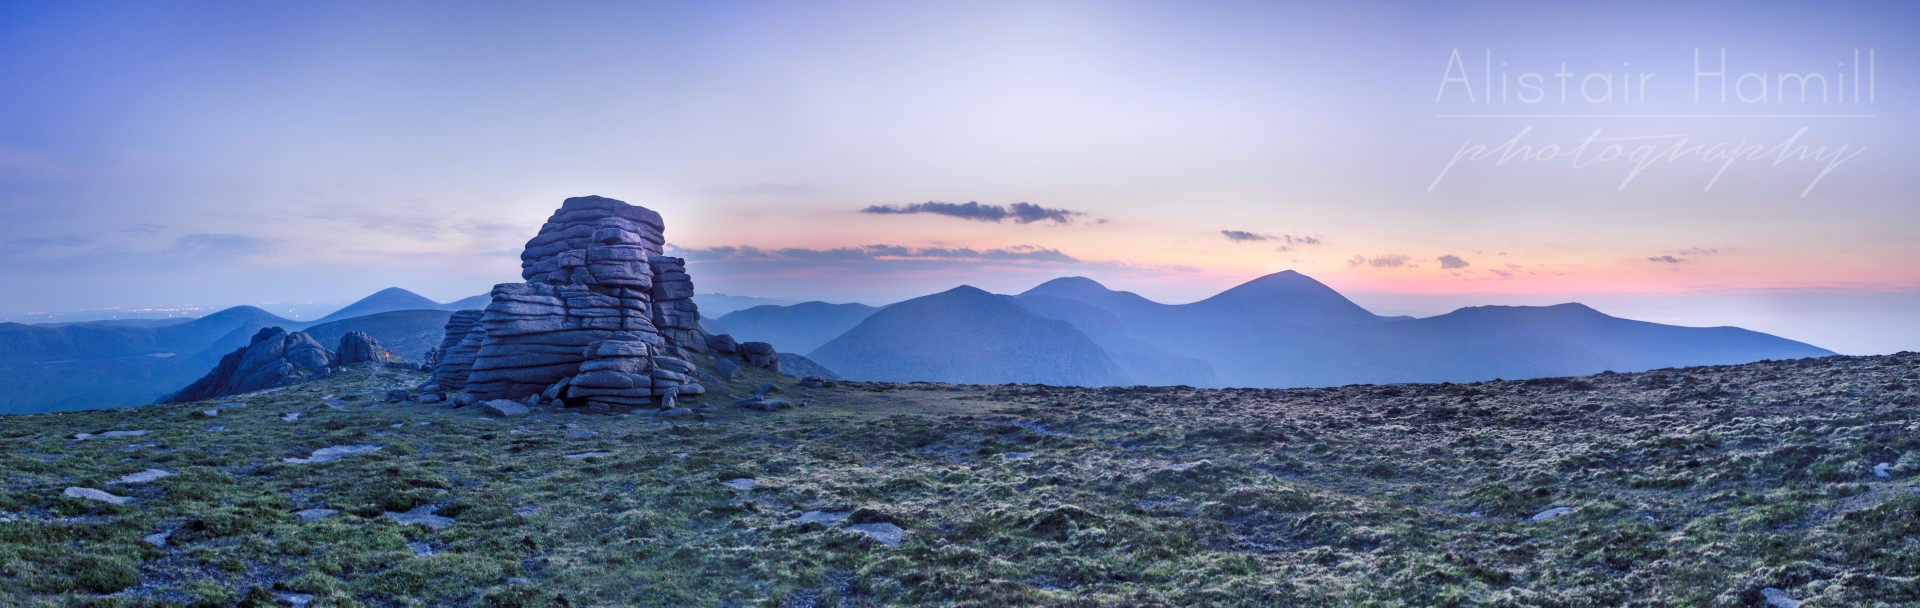 The tor that we sheltered in during the night, emerging from the darkness in the first light of dawn